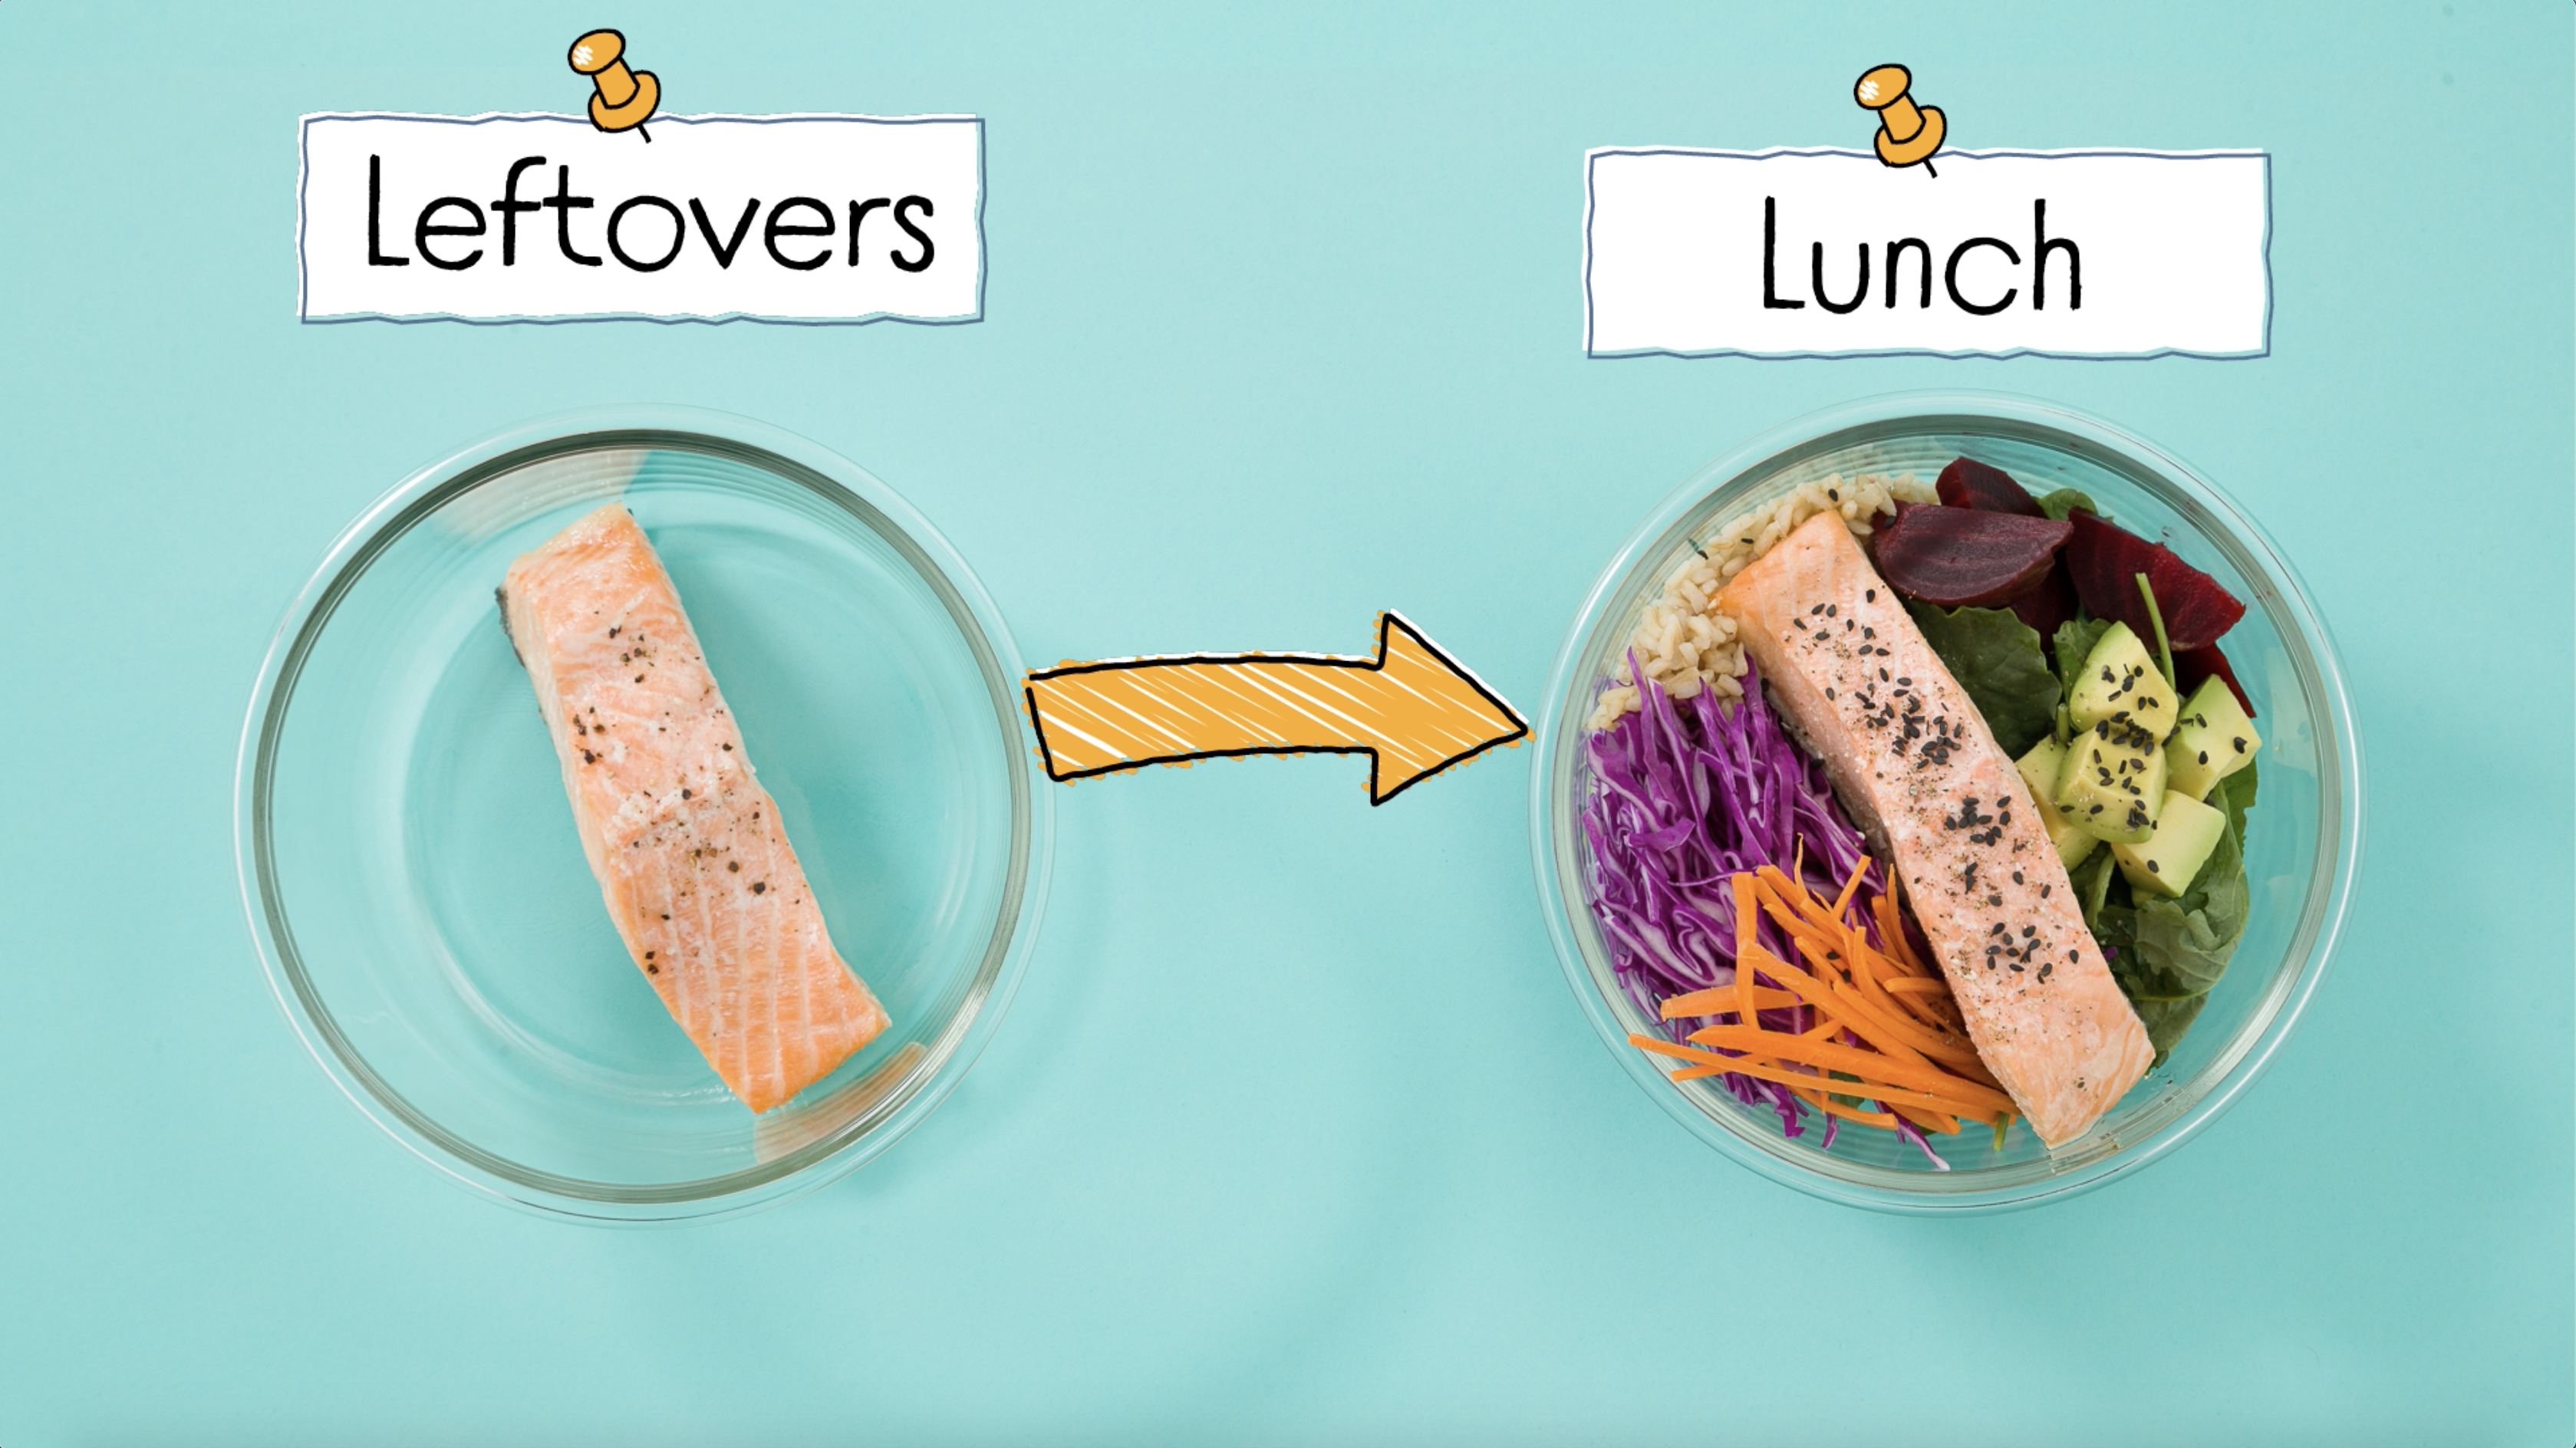 Use these recipes to reimagine your leftovers and pack yourself a delicious lunch